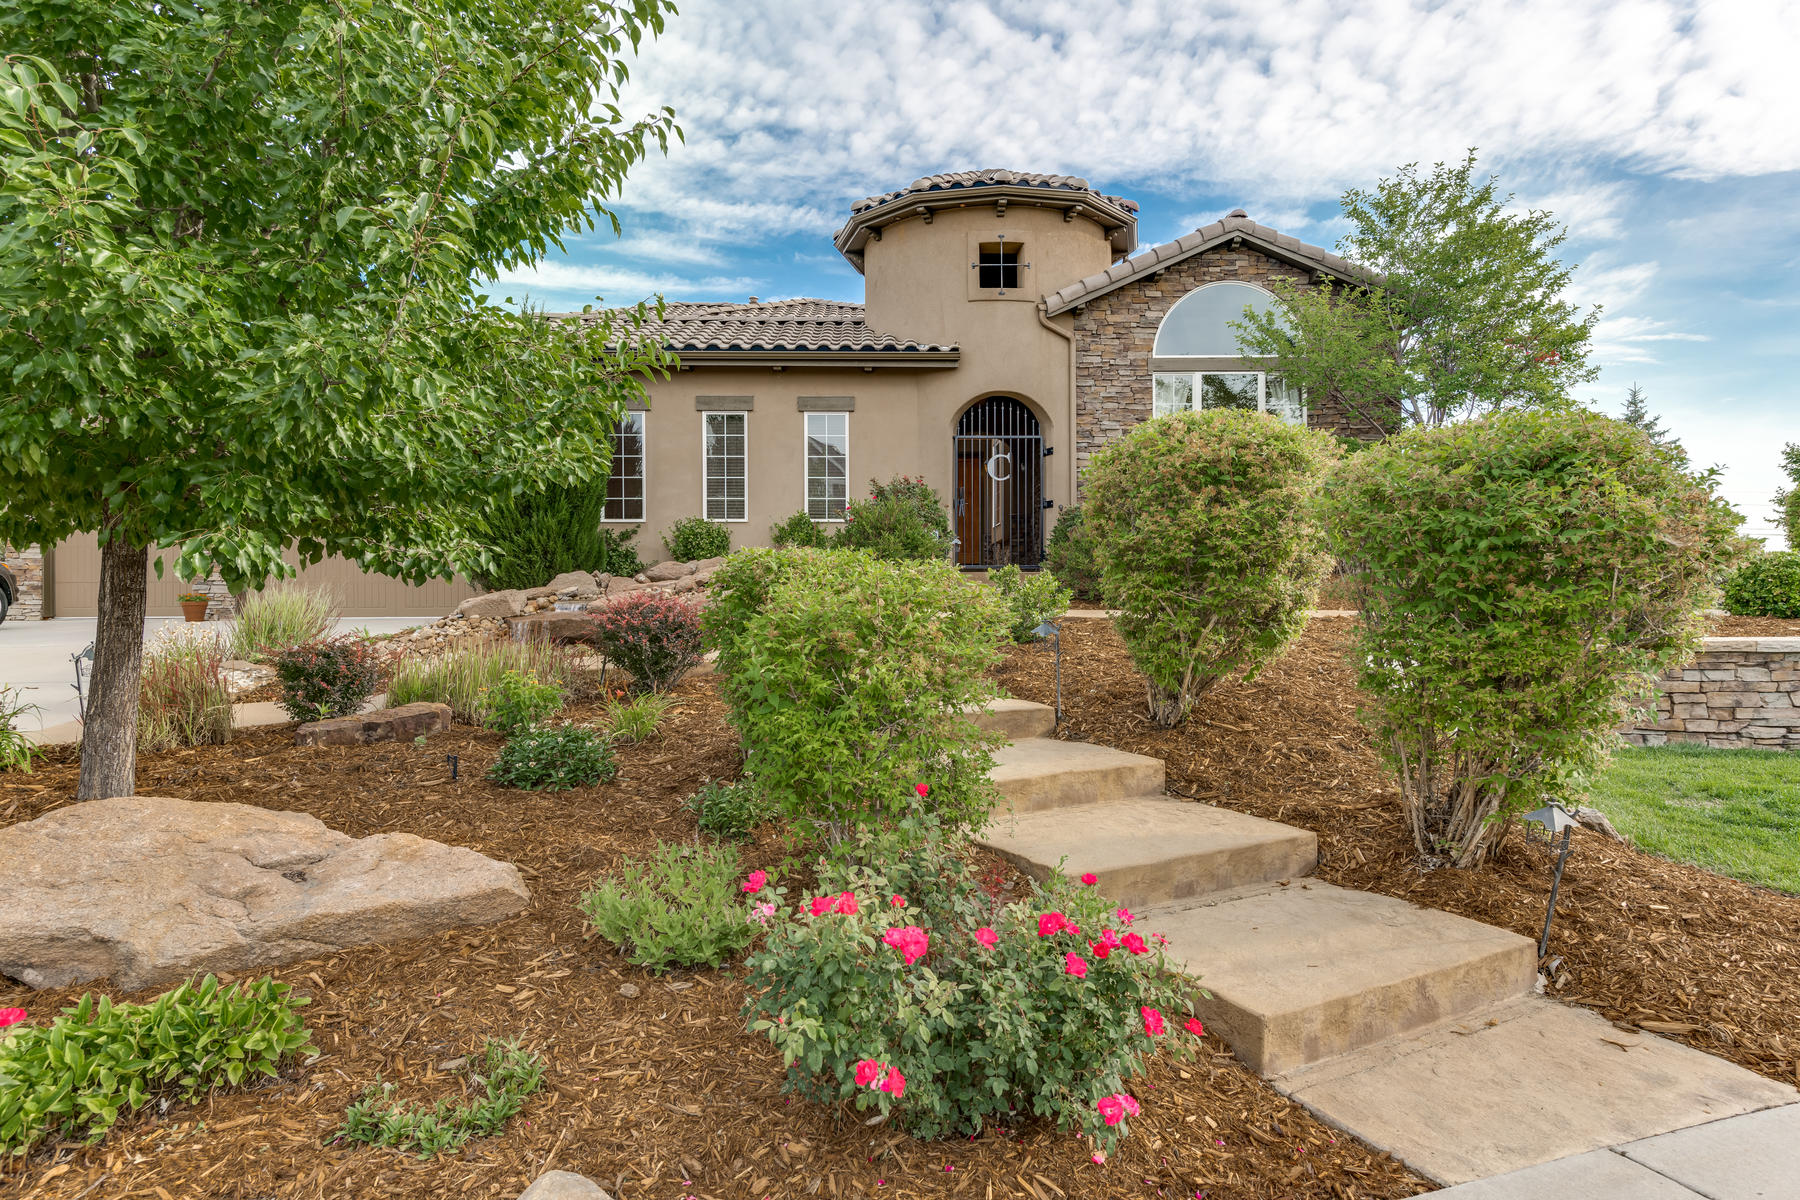 Single Family Home for Active at 15399 W 75th Place 15399 W 75th Place Arvada, Colorado 80007 United States